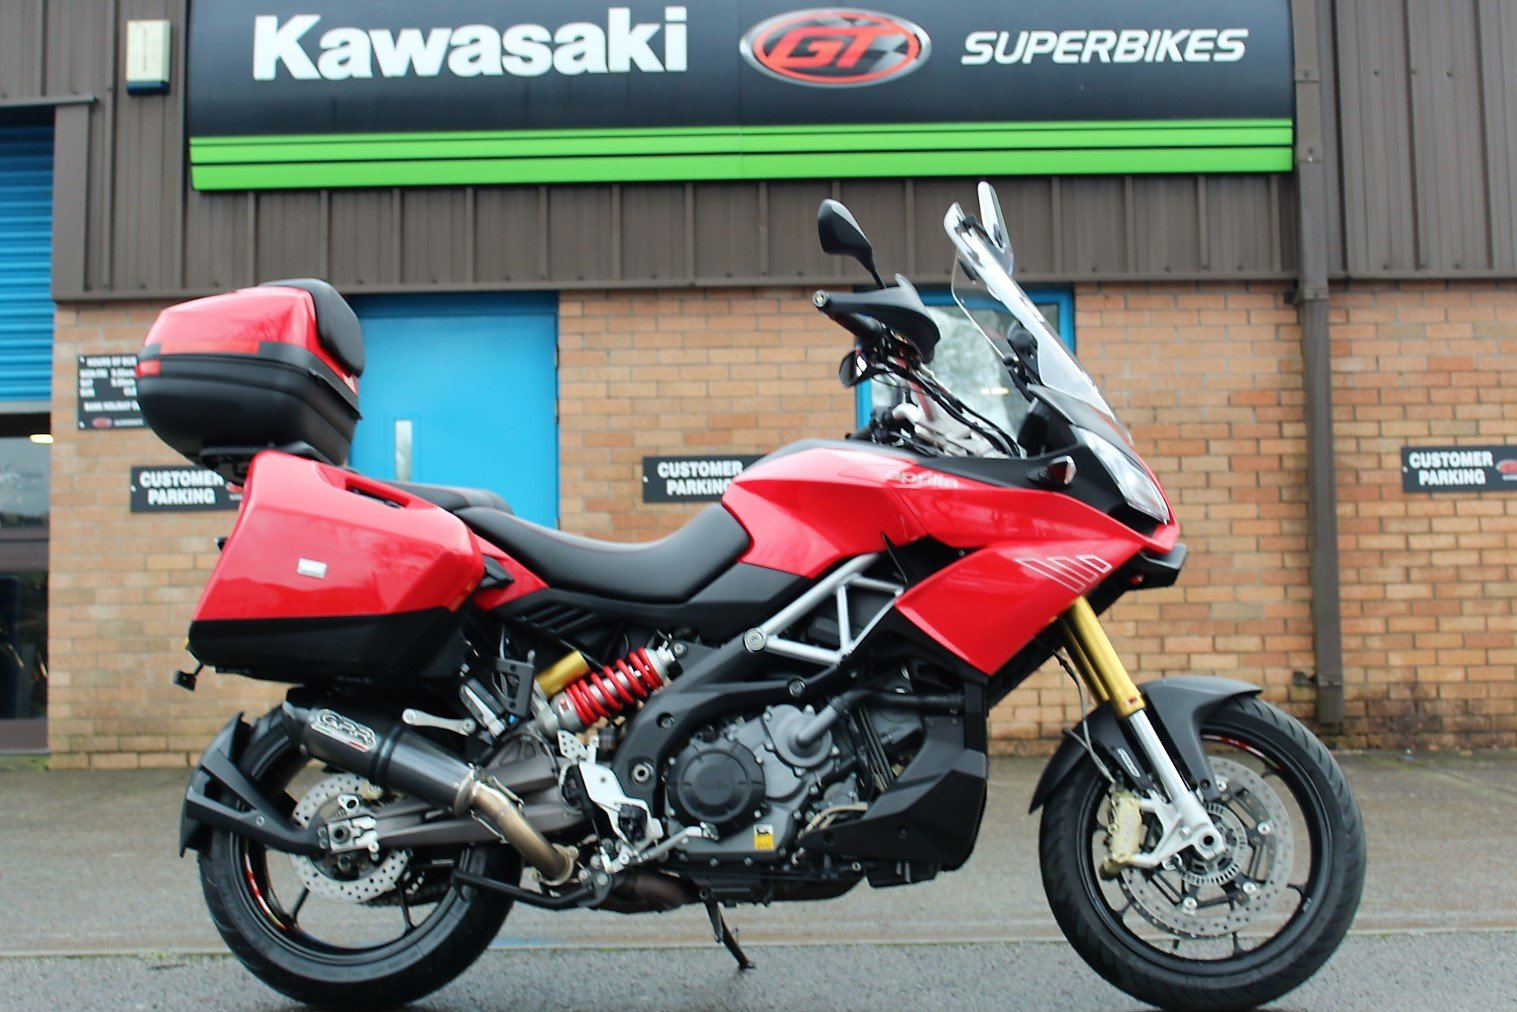 2015 65 Aprilia Caponord 1200 ABS Adventure Tourer For Sale (picture 1 of 12)